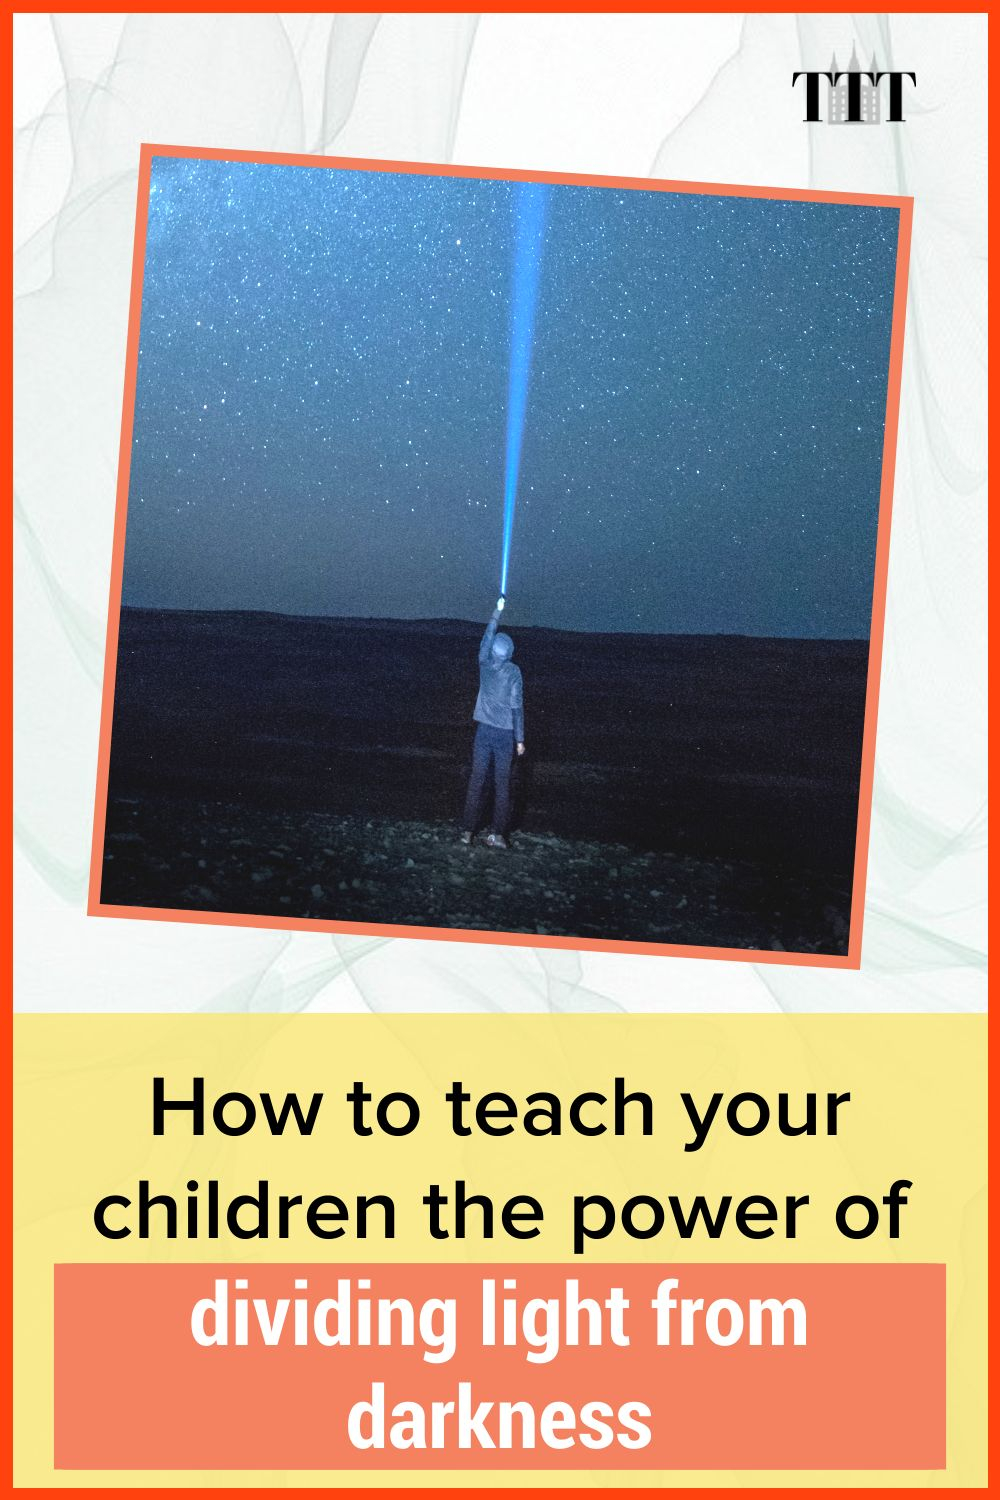 How to teach your children the power of dividing light from darkness